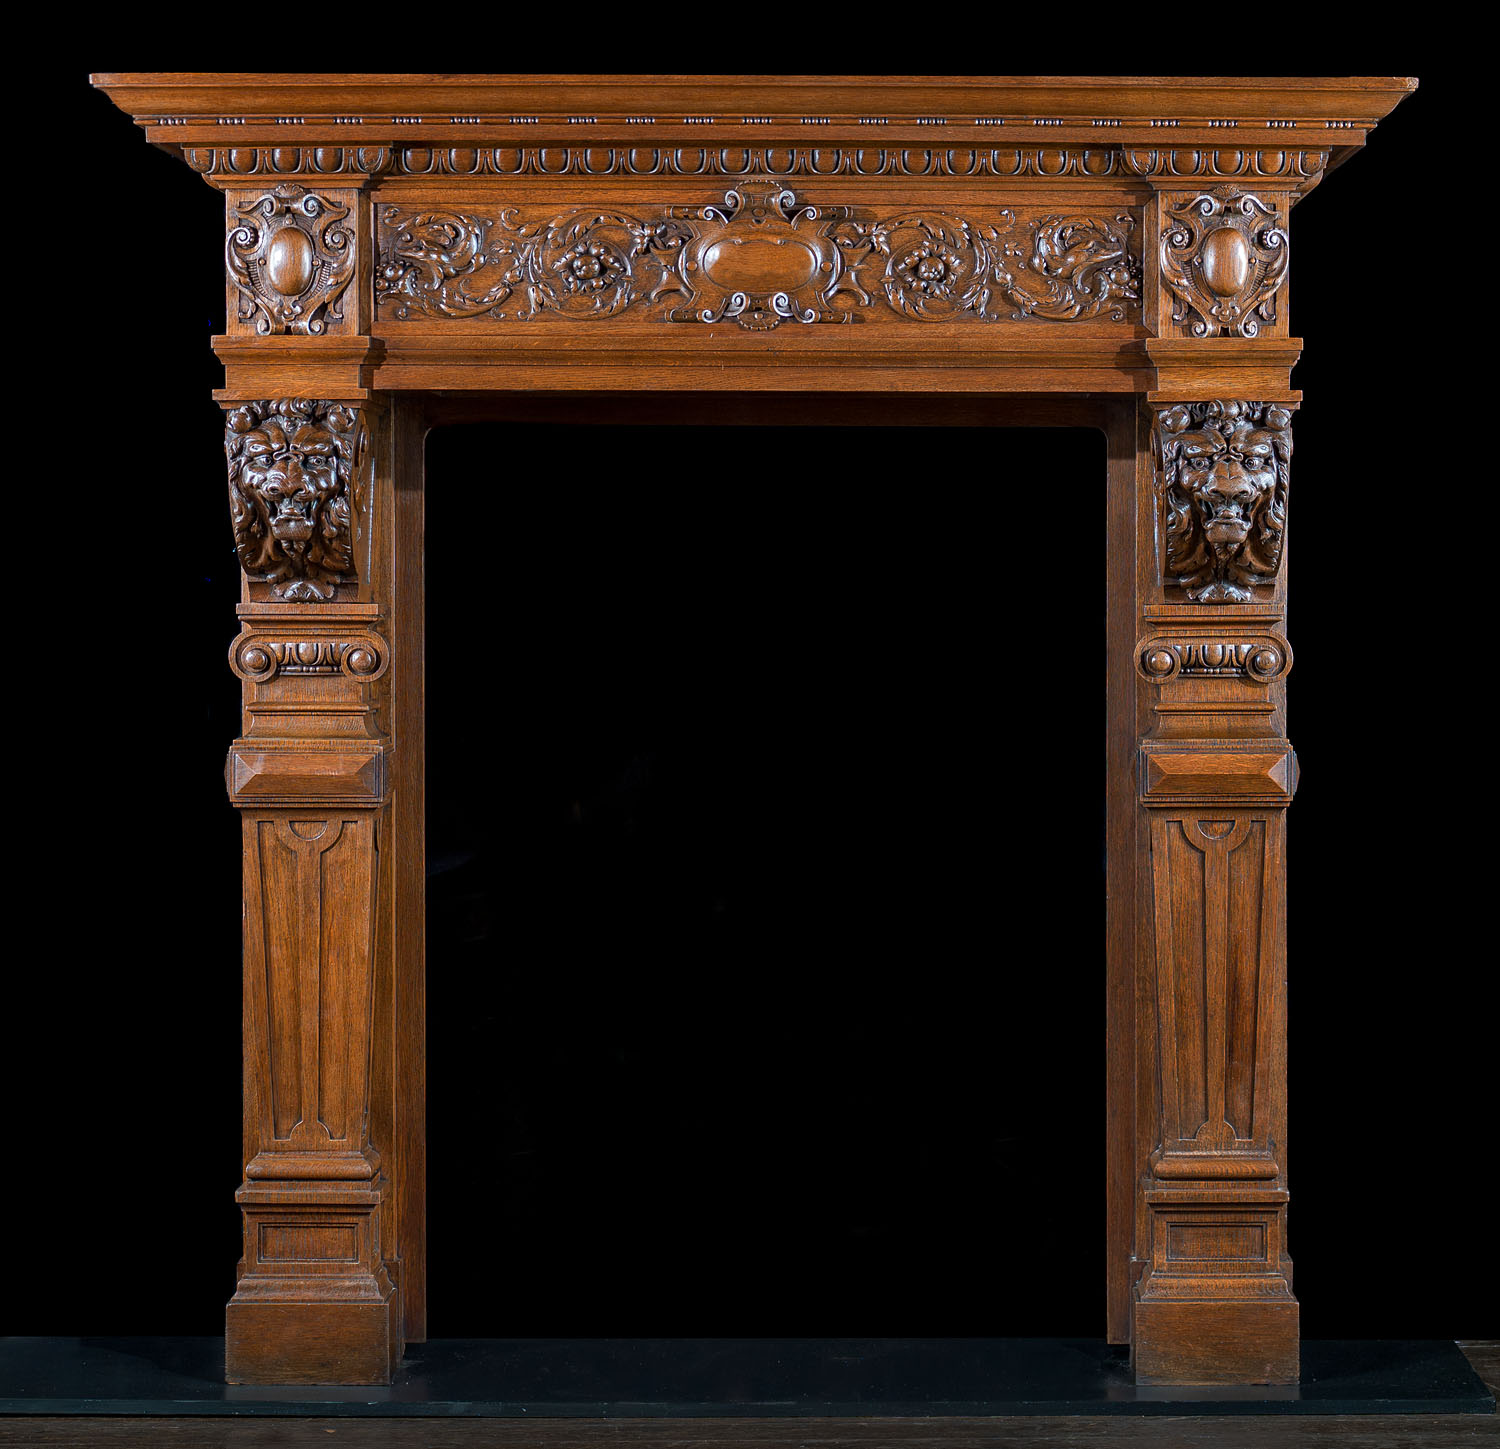 Baroque Antique Wood Fireplace Mantel Westland Antiques